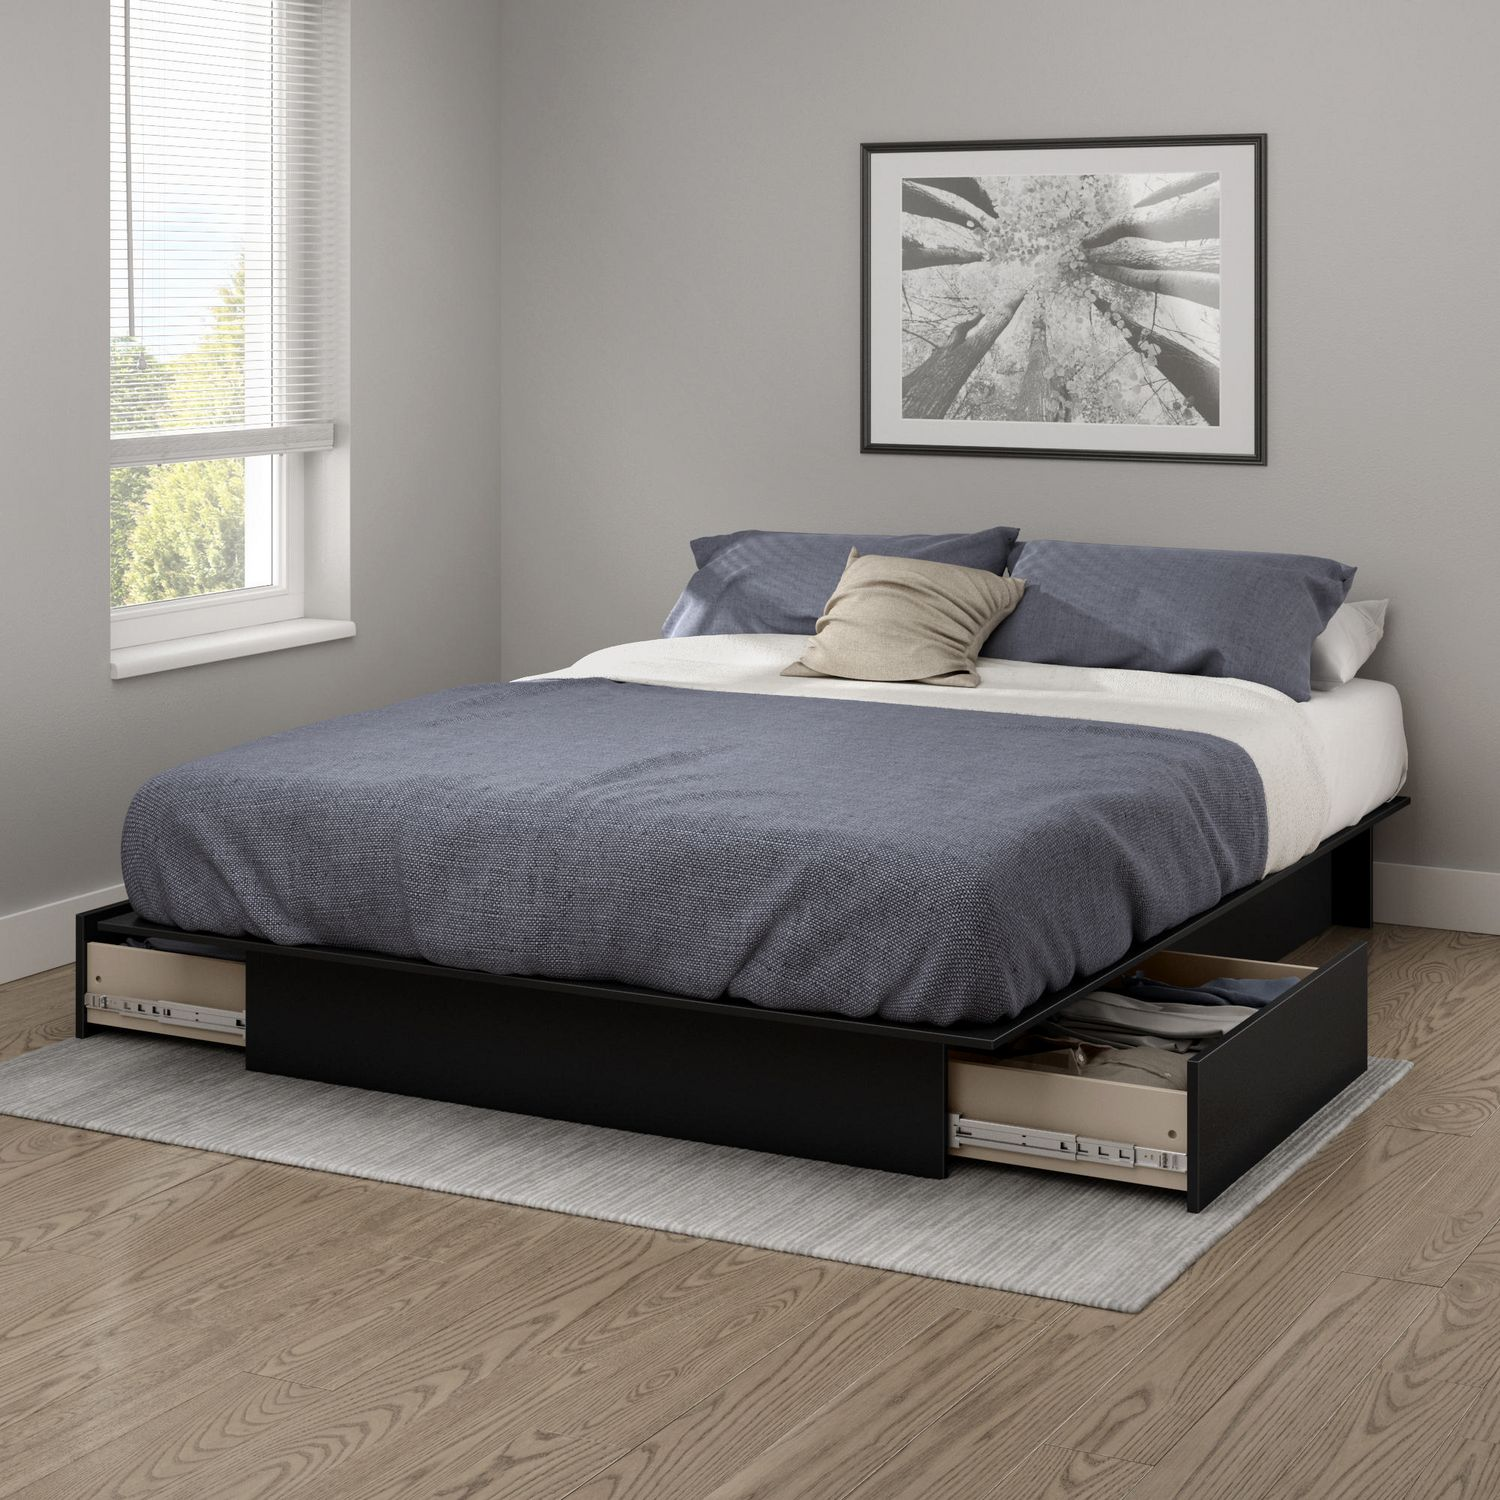 nicole platform beautiful with frehsee of drawers beds home bed rustic image queen